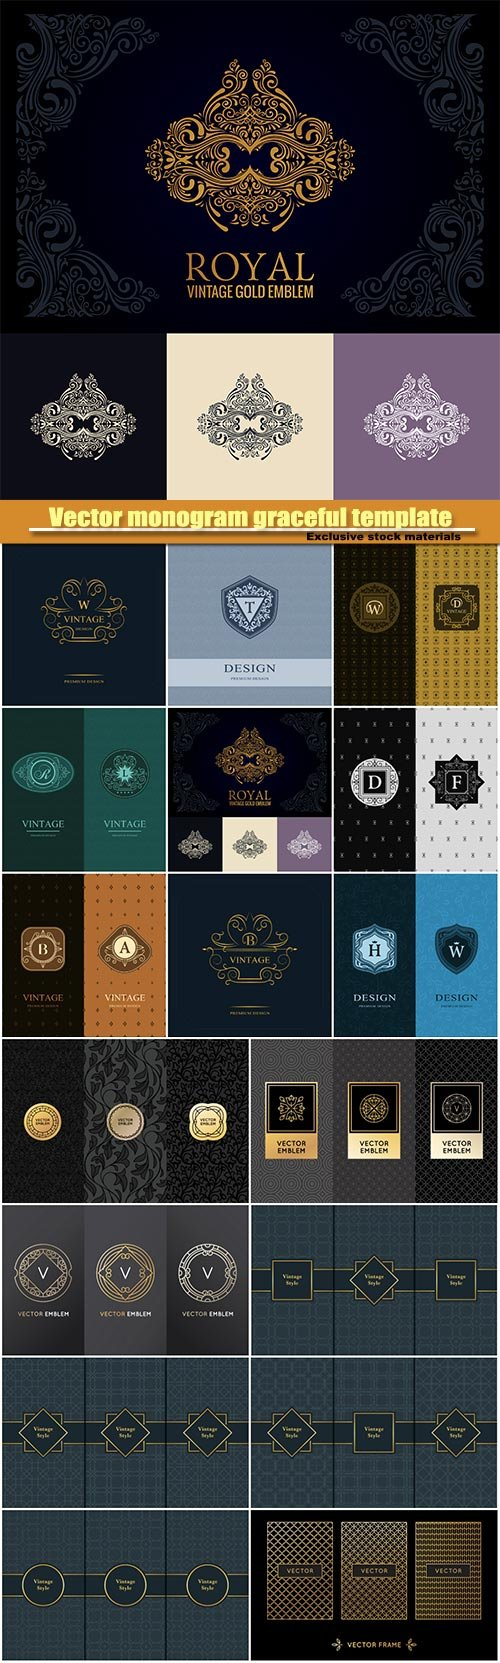 Vector monogram graceful template, seamless pattern , calligraphic elegant logo design